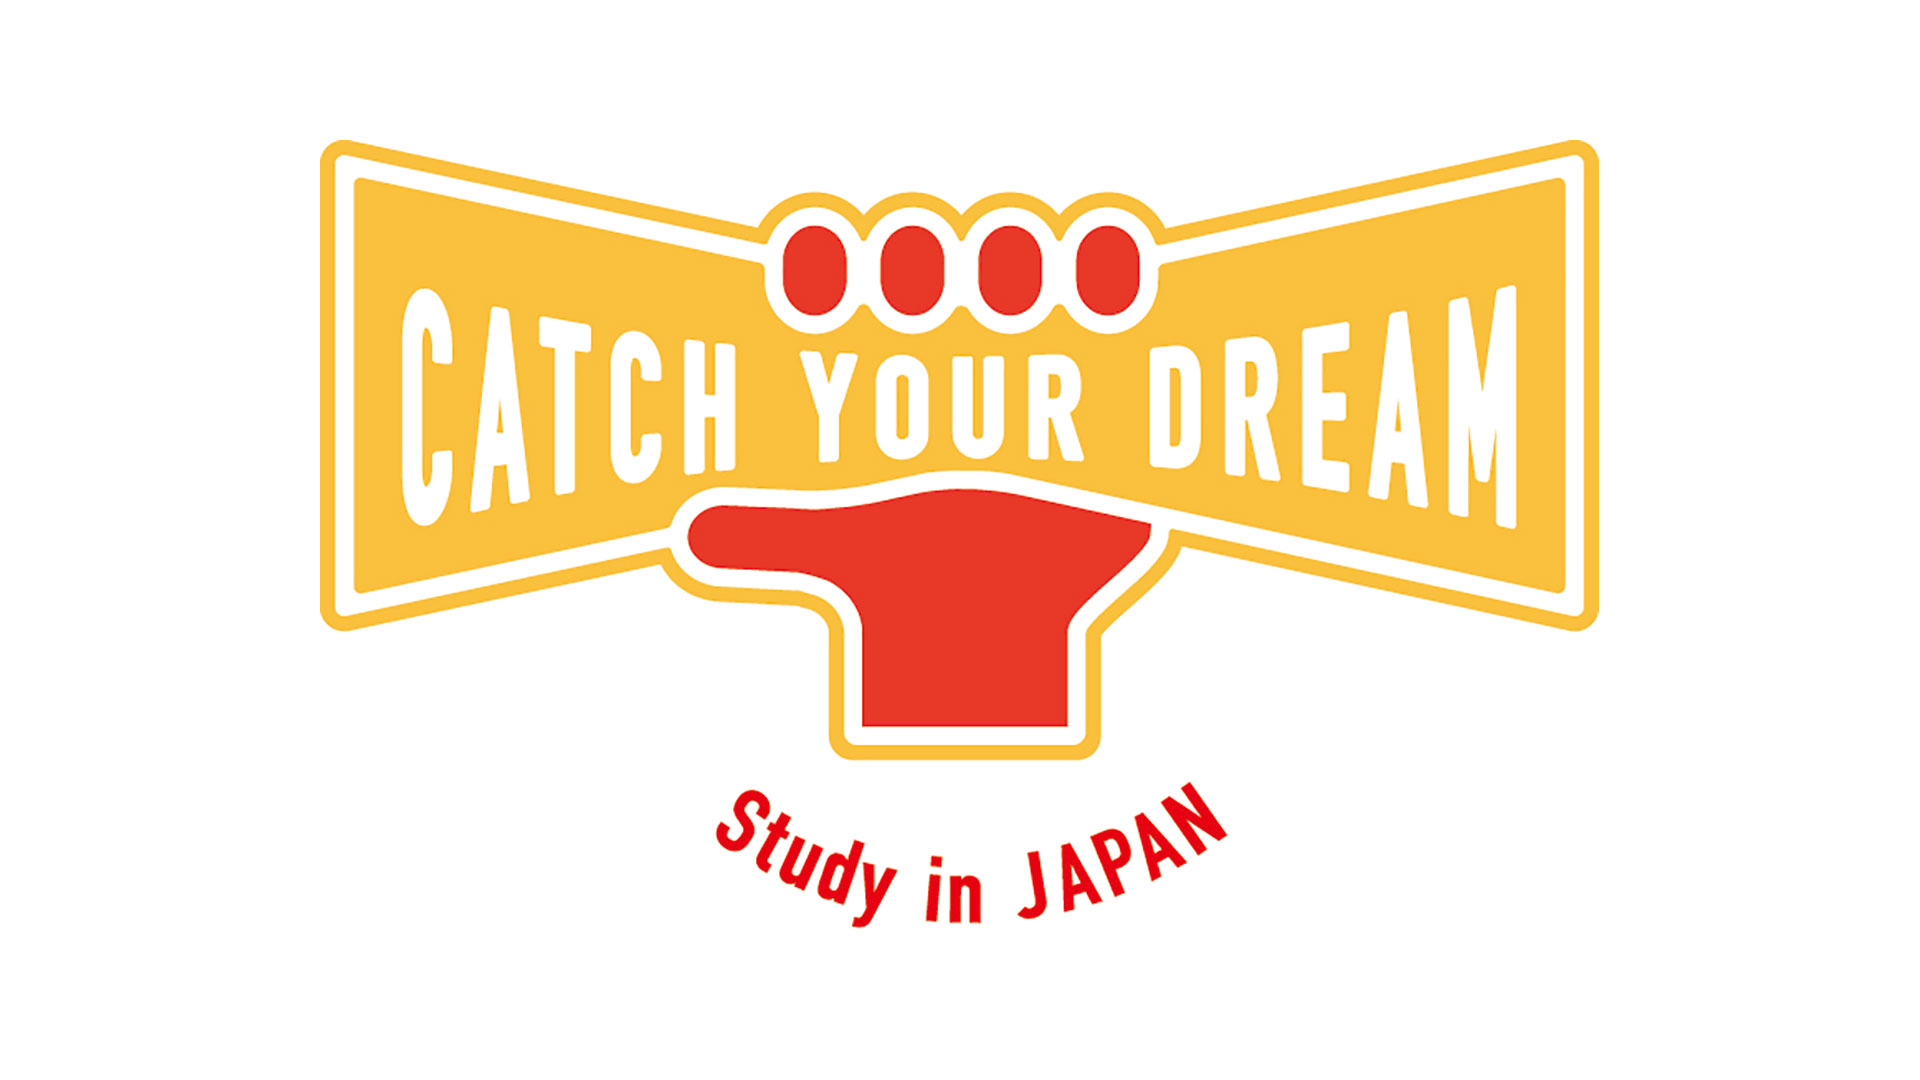 Catch Your Dream! -Study in JAPAN-